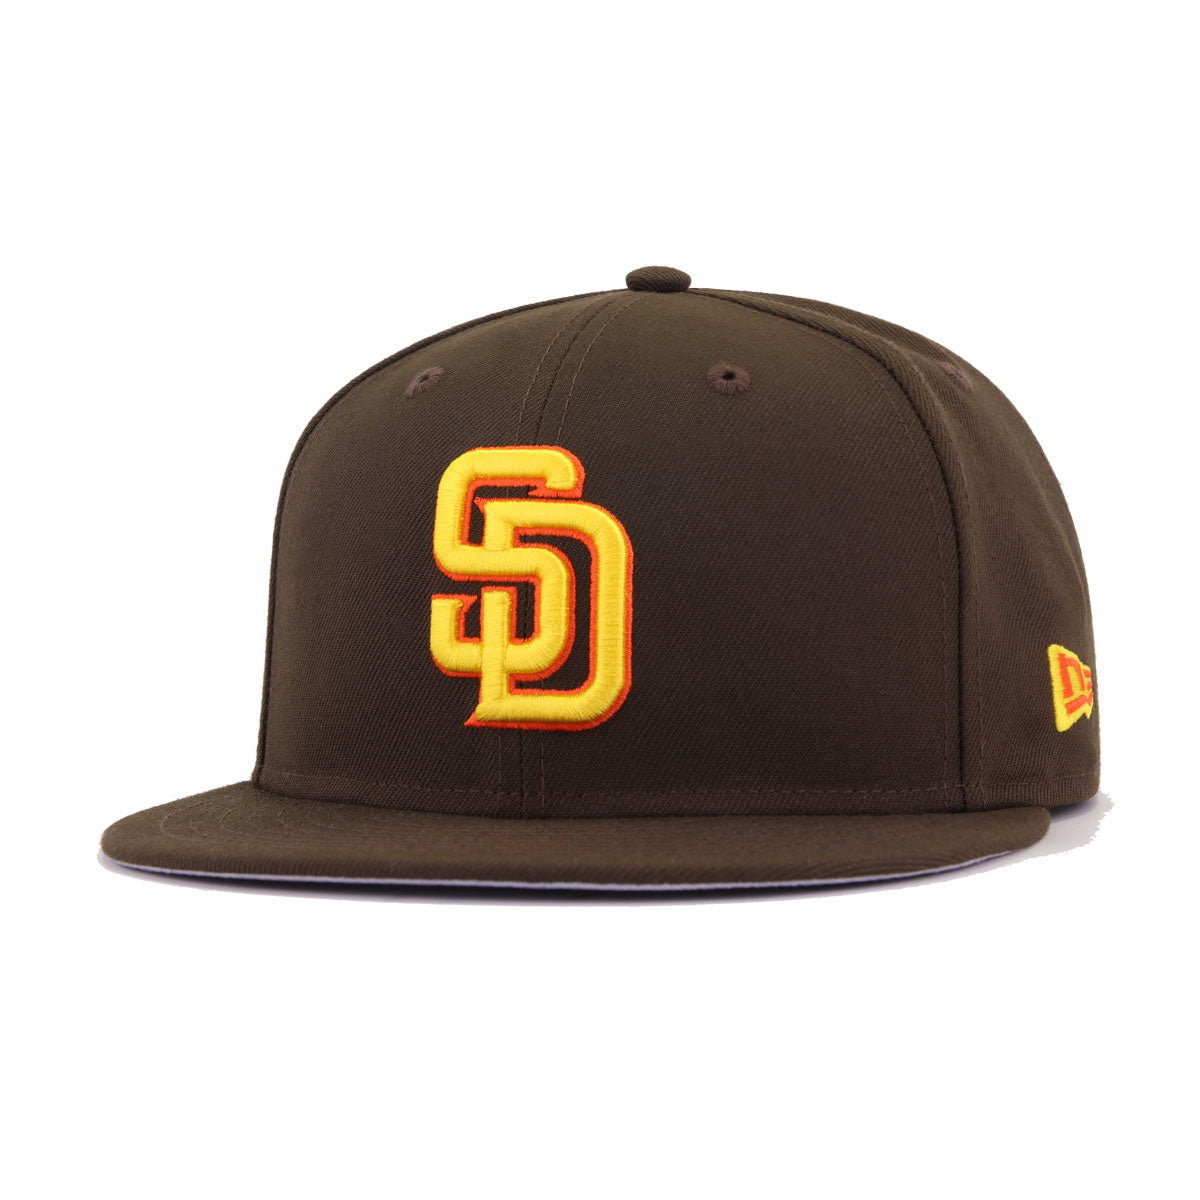 San Diego Padres Walnut 2016 All Star Game New Era 59Fifty Fitted